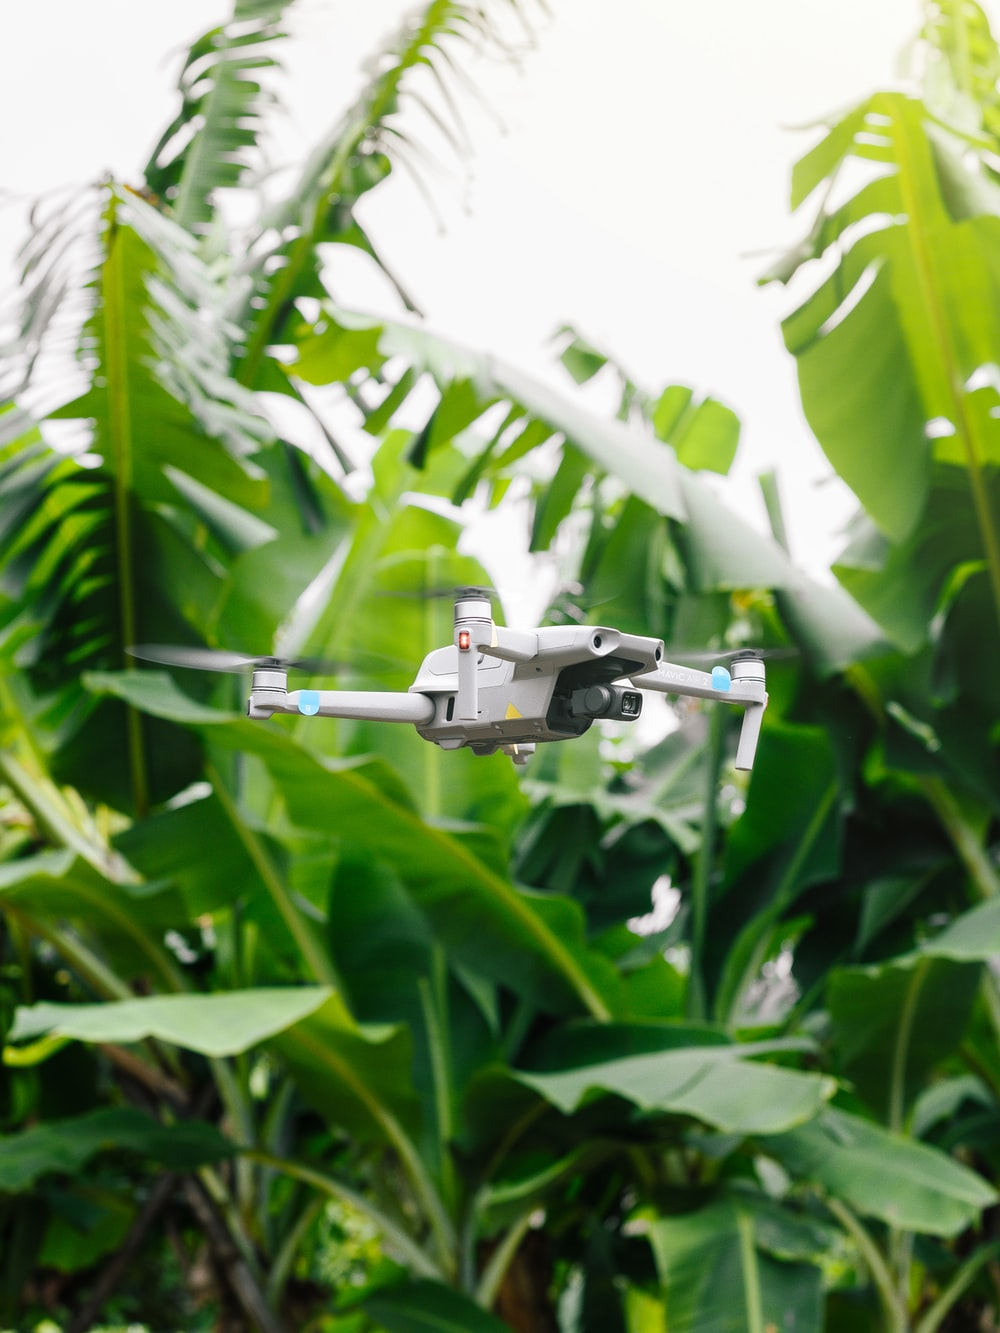 gray and black drone on green plant during daytime